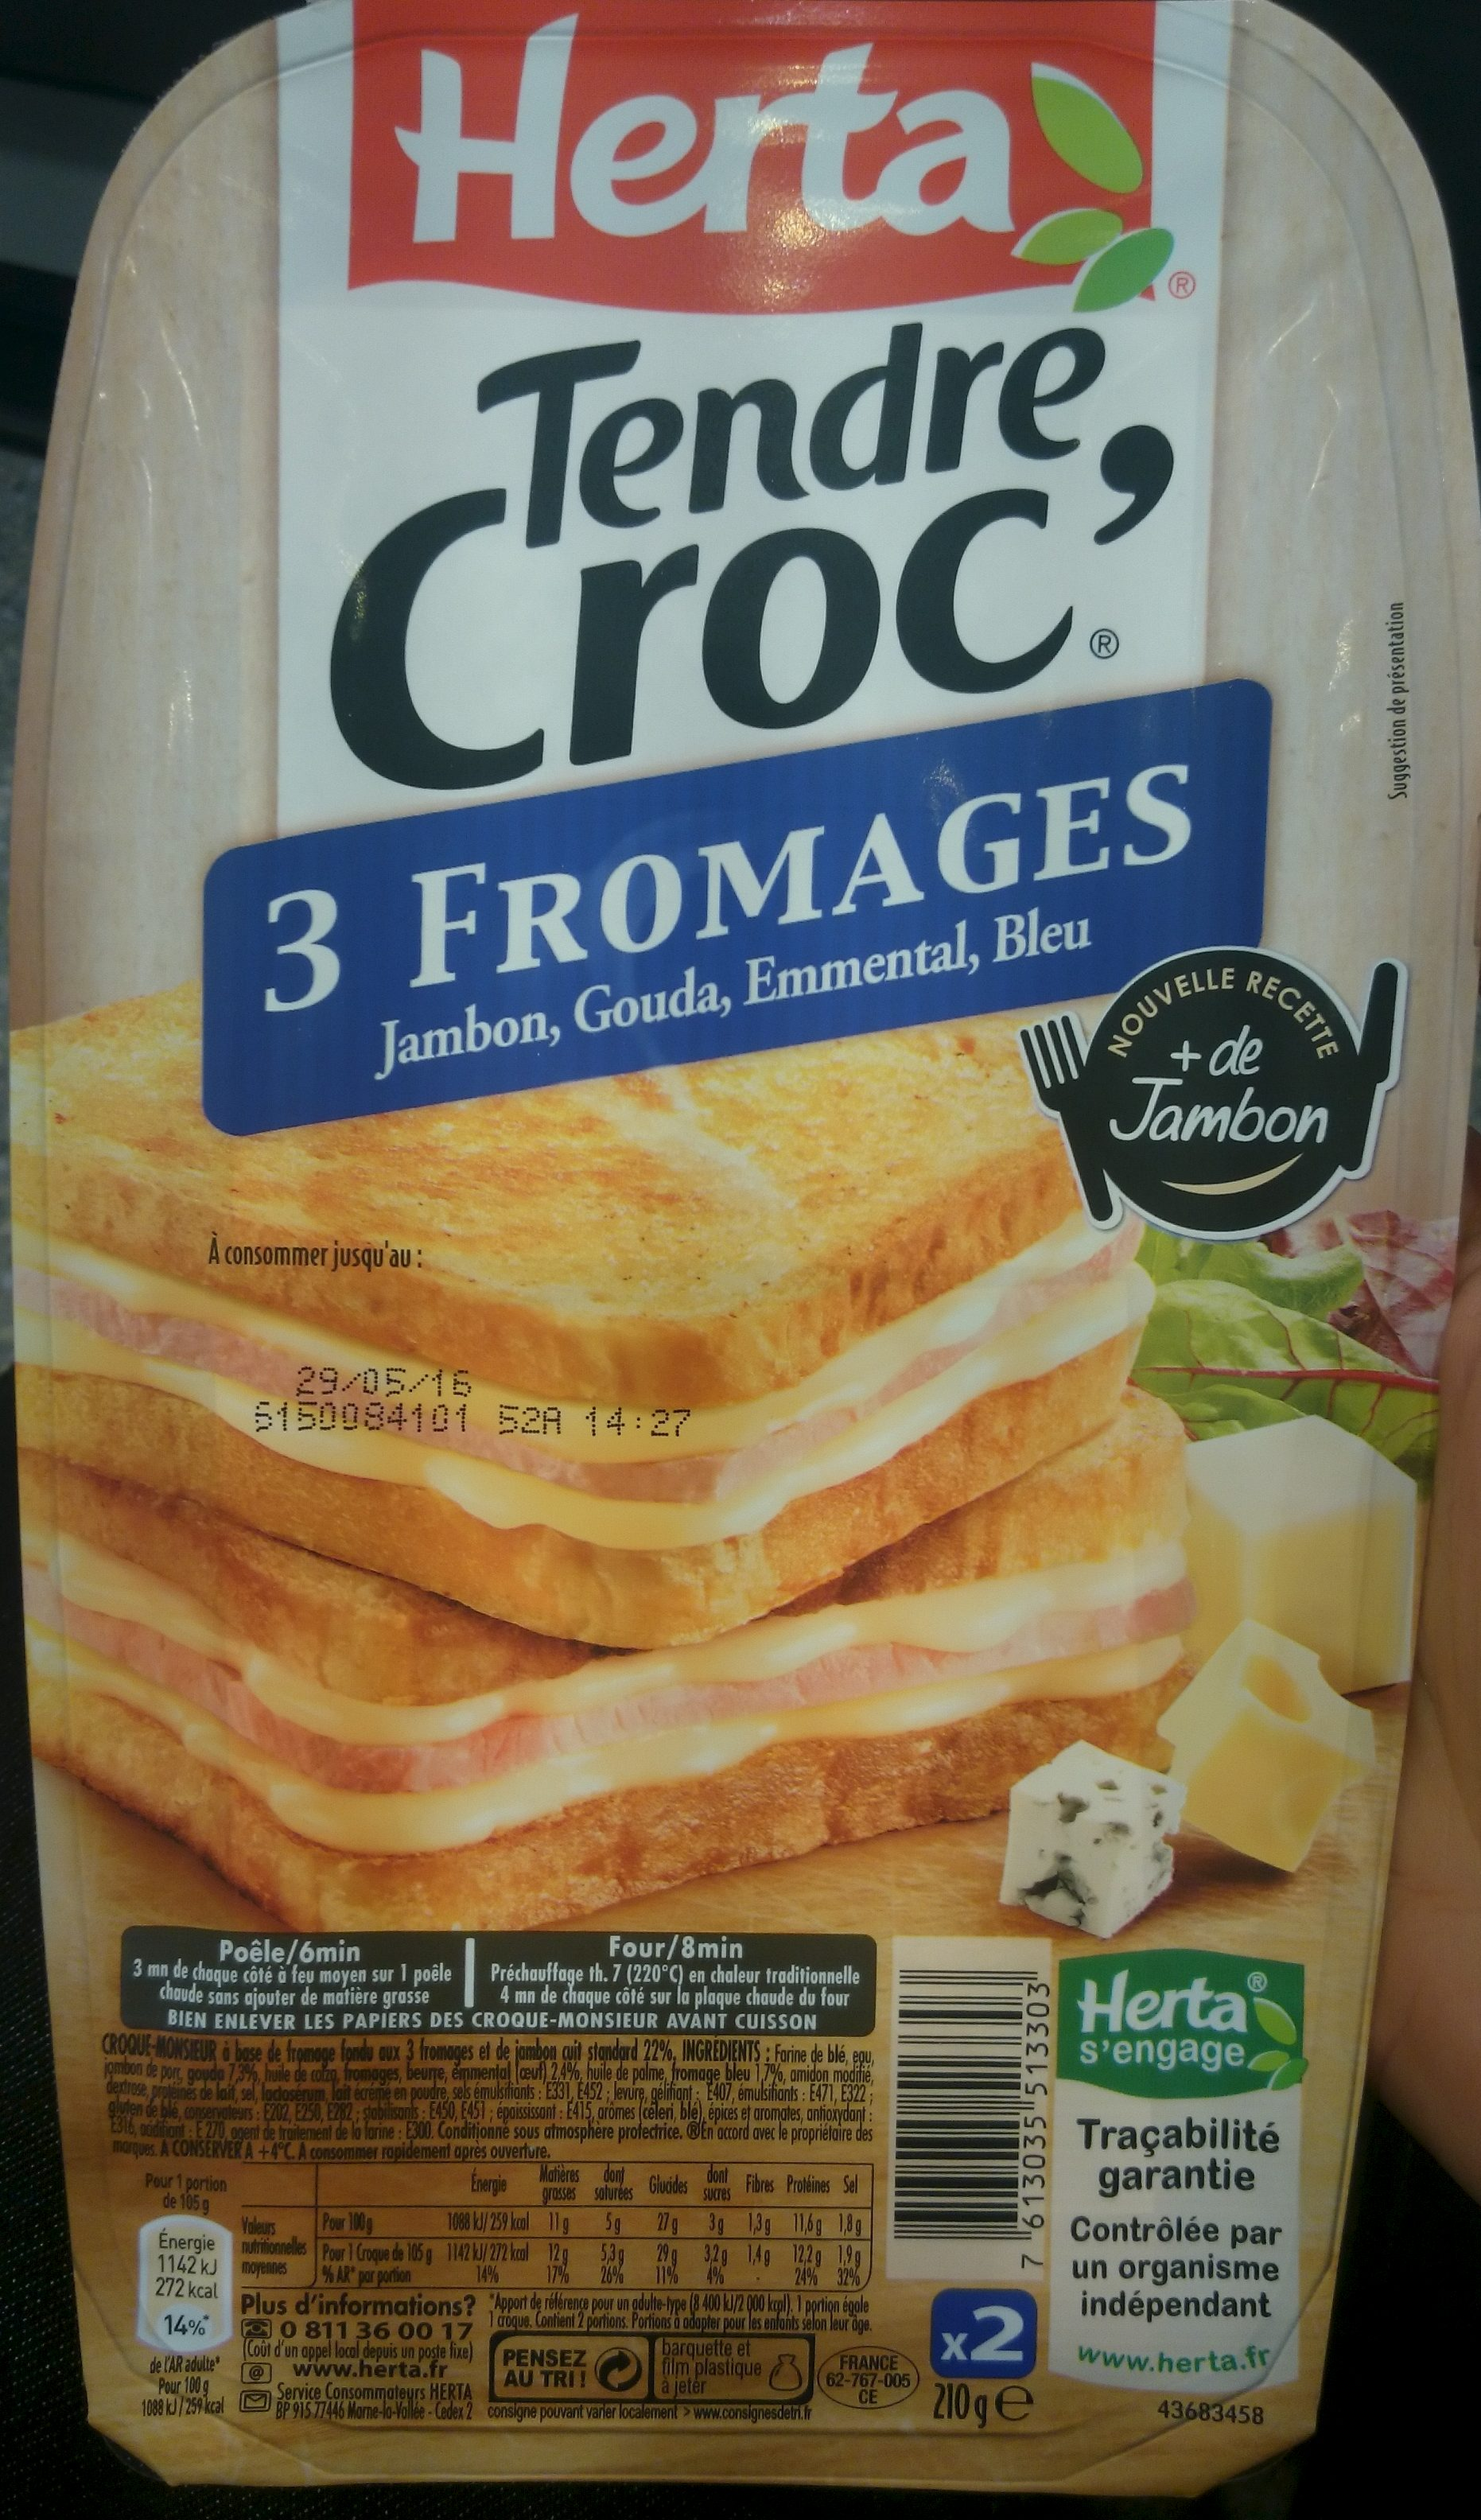 Tendre Croc' 3 Fromages - Product